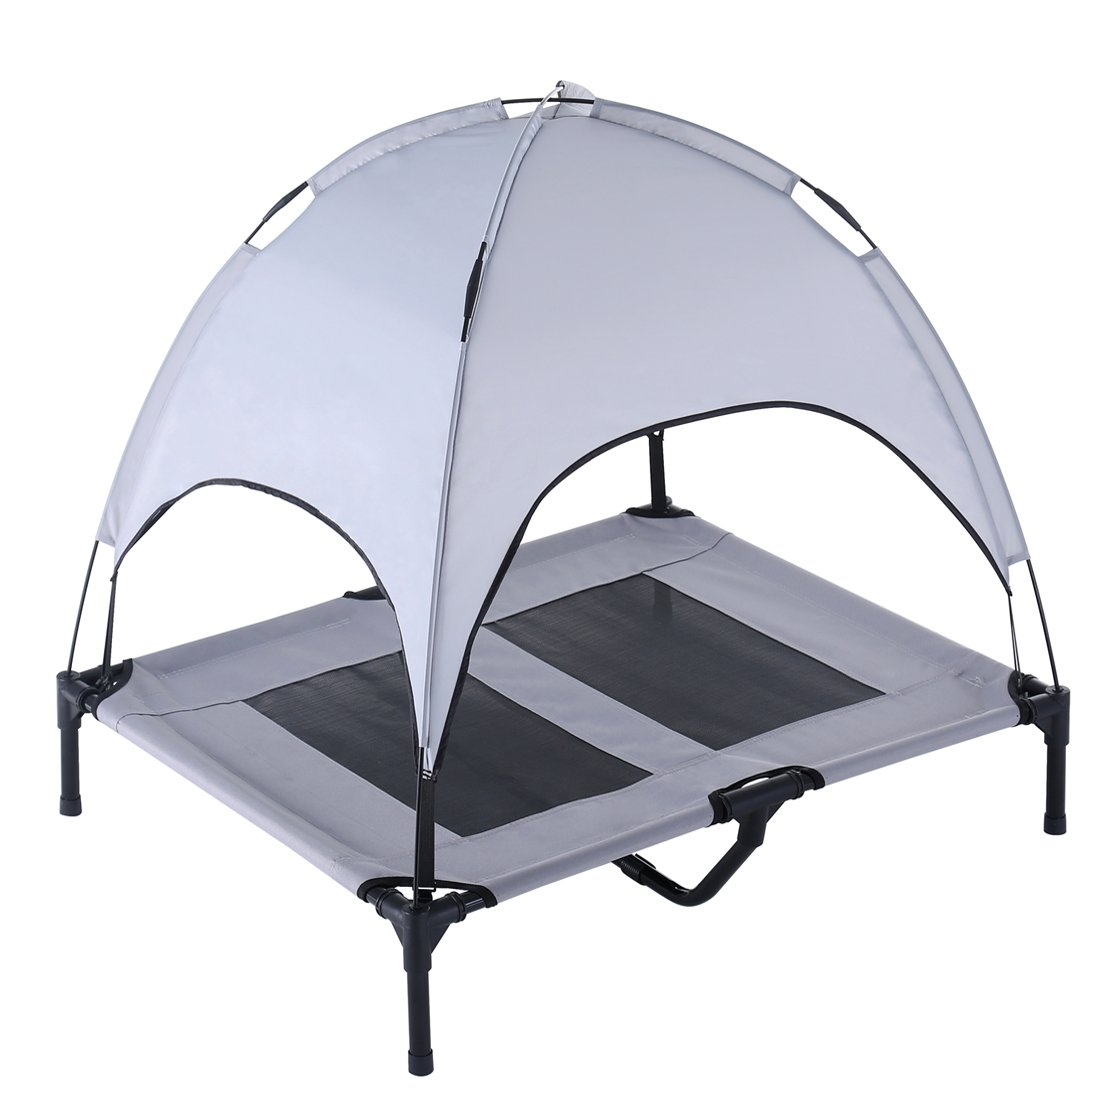 SUPERJARE Large Dog Cot Canopy Elevated Pet Bed|Indoor Outdoor |Sturdy 1680D Oxford Fabric|Lightweight & Portable|Extra Carrying Bag|Gray